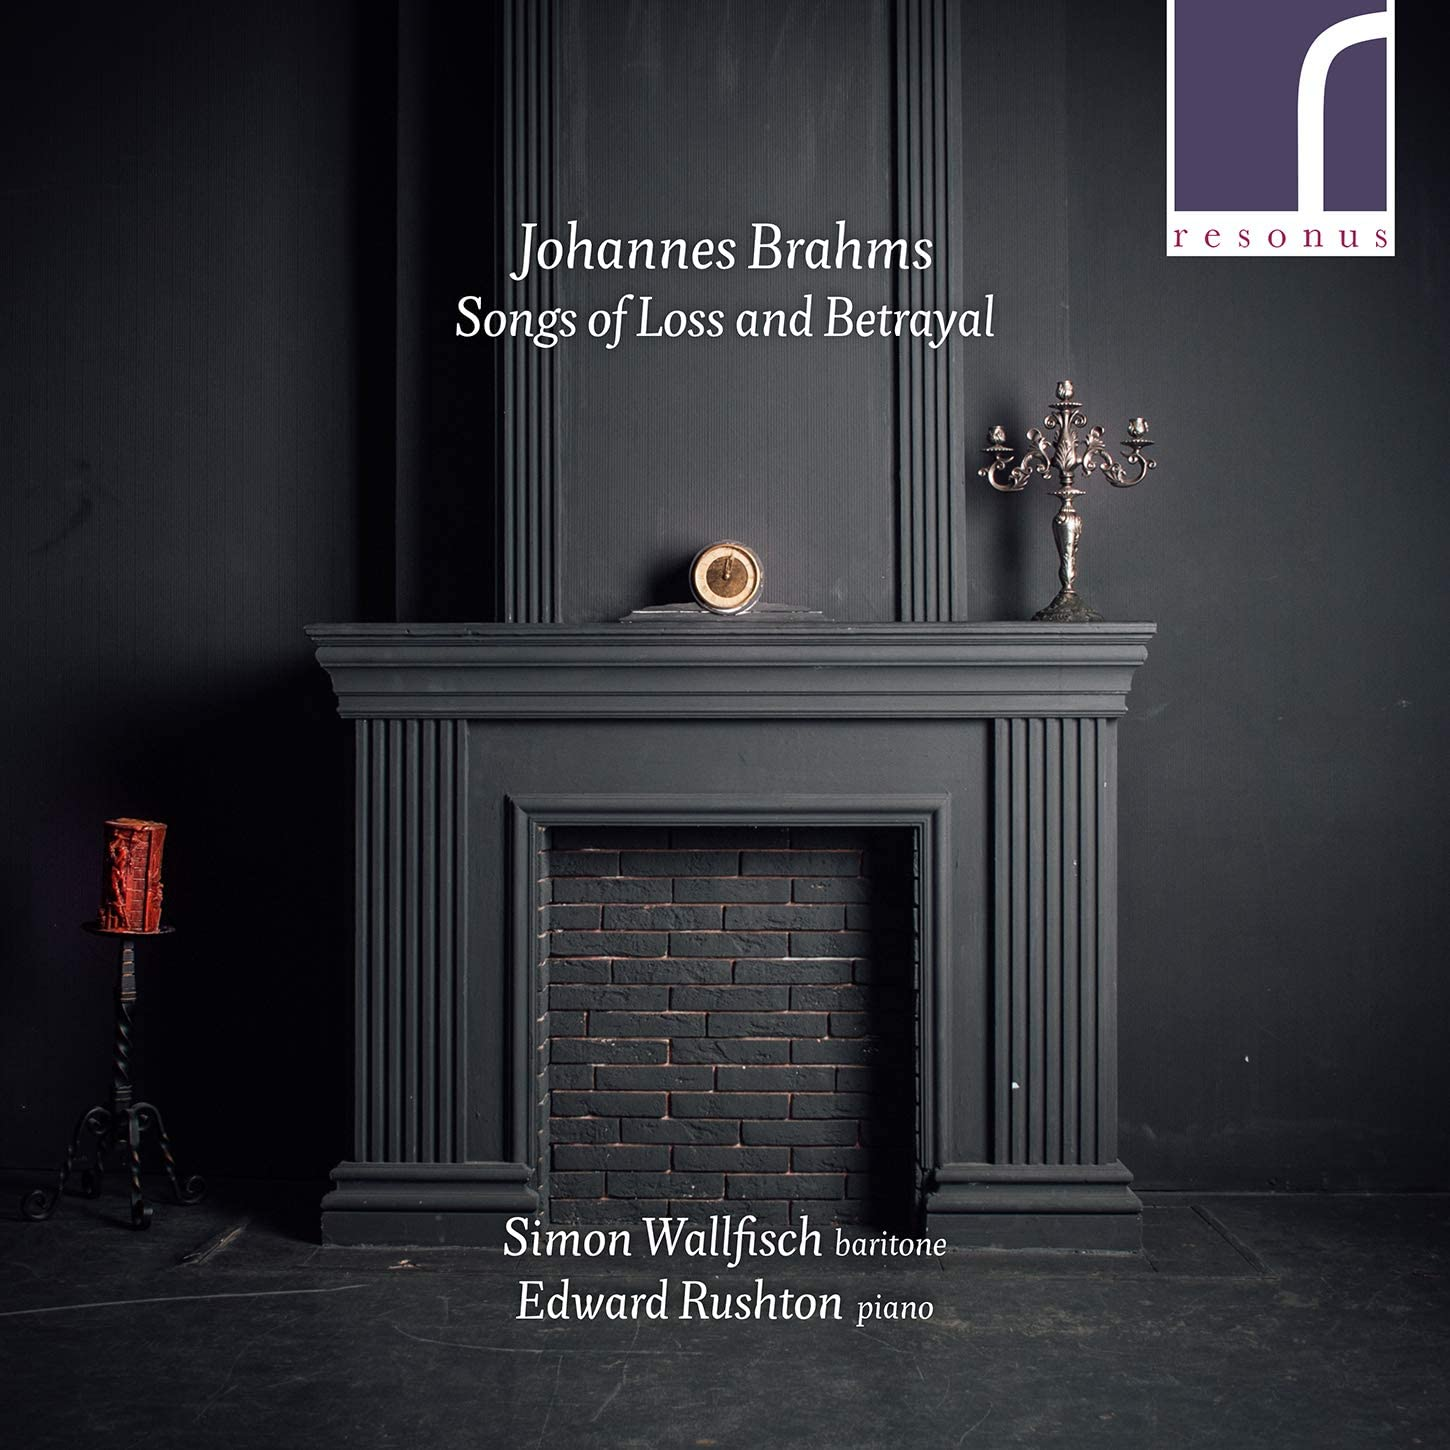 Review of BRAHMS Songs of Loss and Betrayal (Simon Wallfisch)